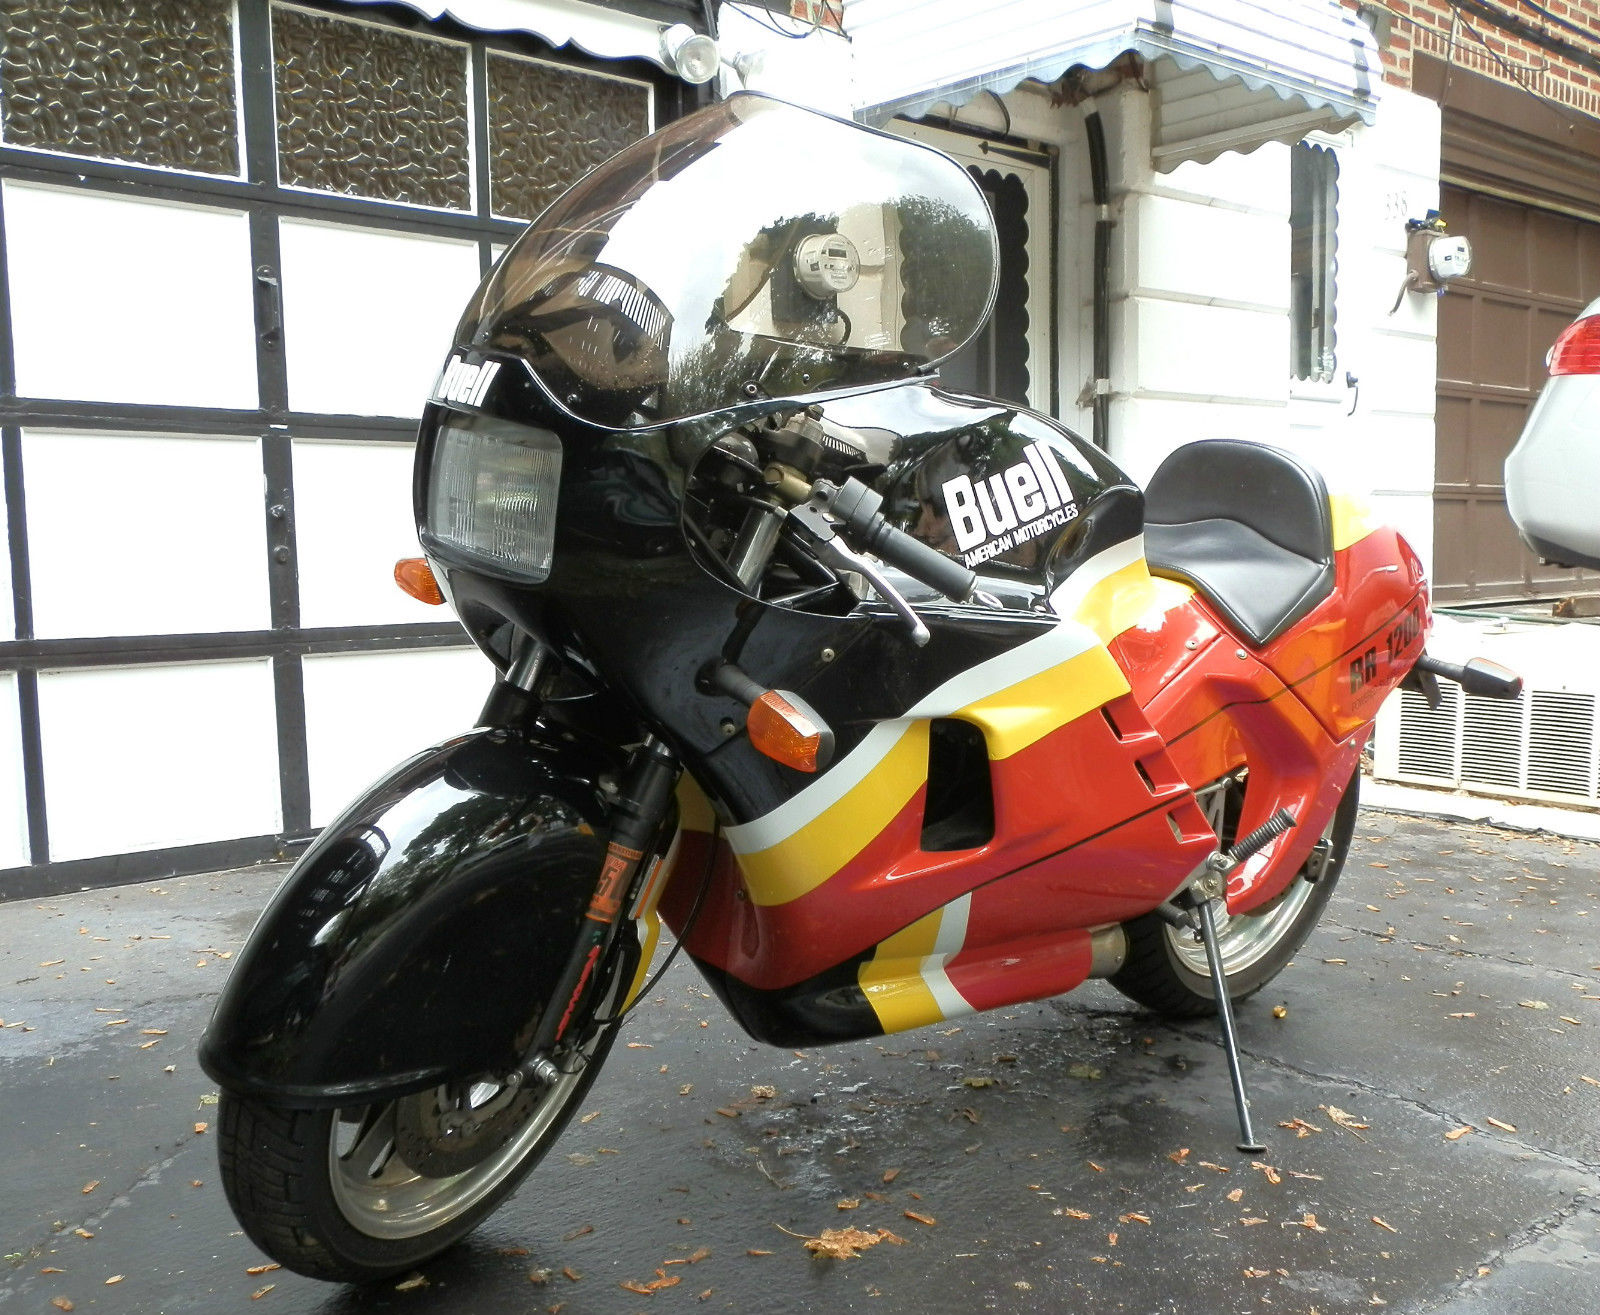 moreover 19682 1989 Buell Rr 1200 Battletwin Very Very Rareone Owner3500 Miles together with Pintores Gallegos Virxilio Blanco Garrido additionally Spectro Primary Oil as well Honda Cbr Fireblade Angry Bird. on buell engine rebuild